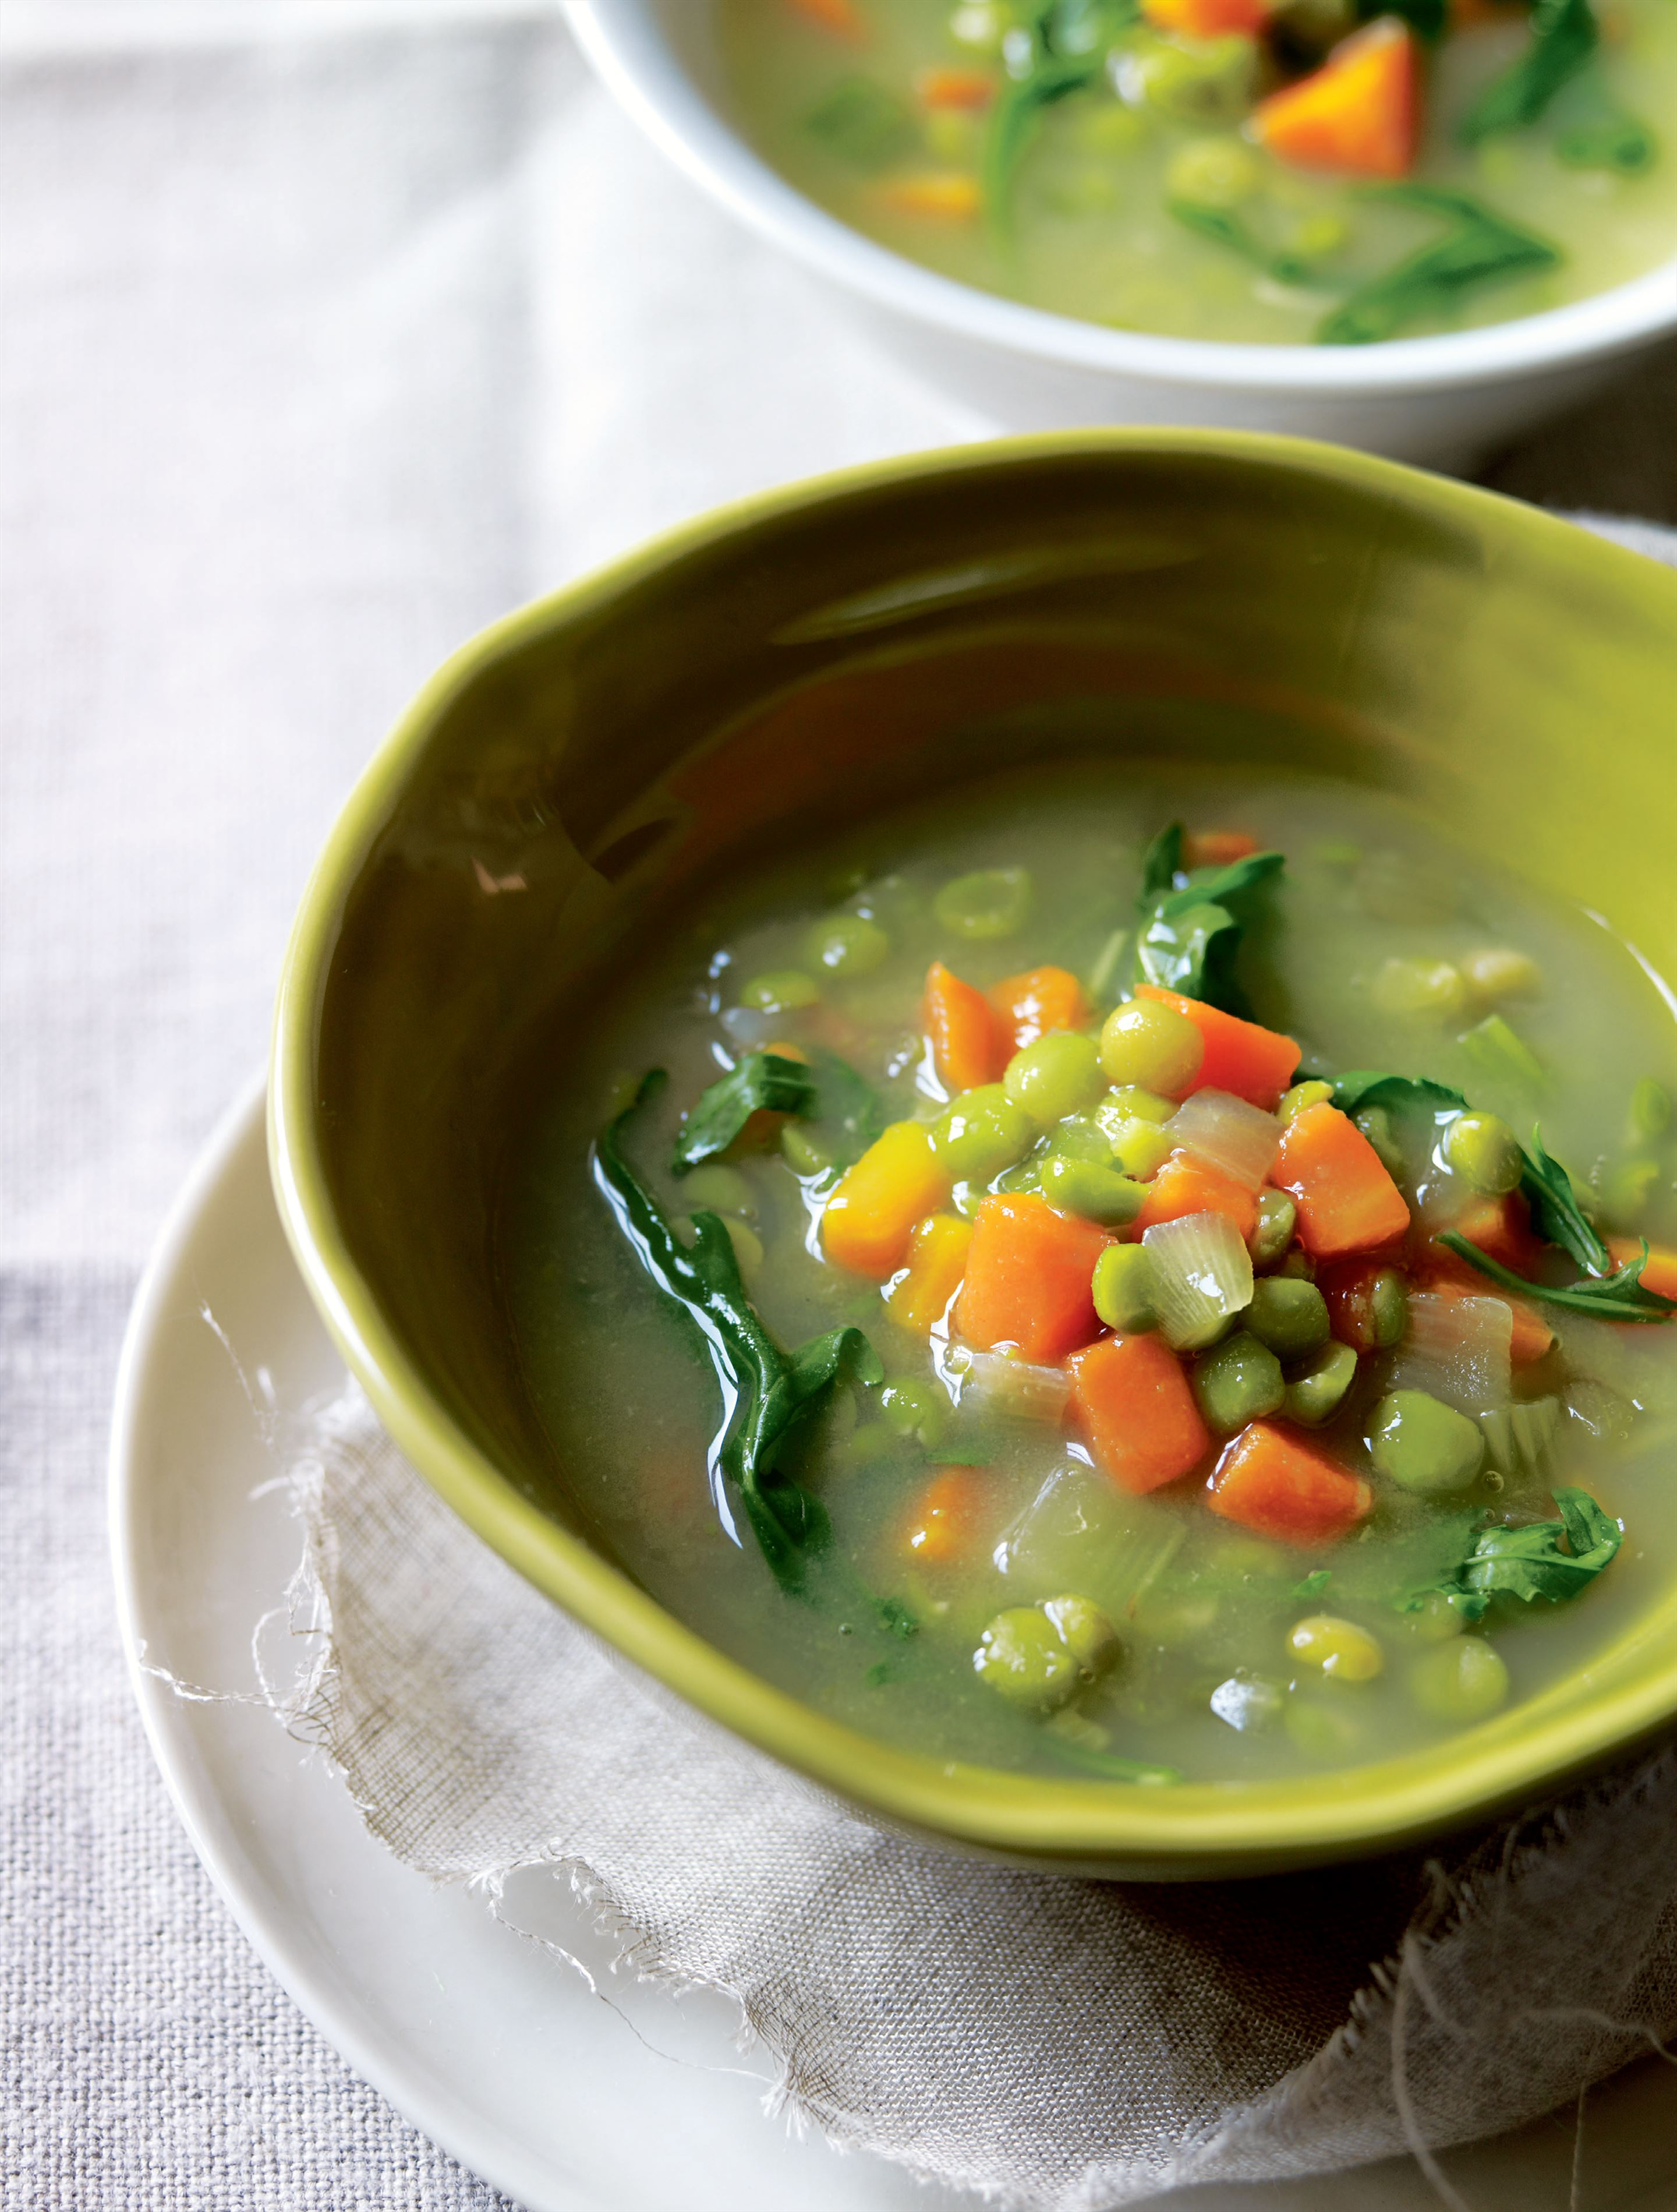 Creamy split pea soup with bitter greens